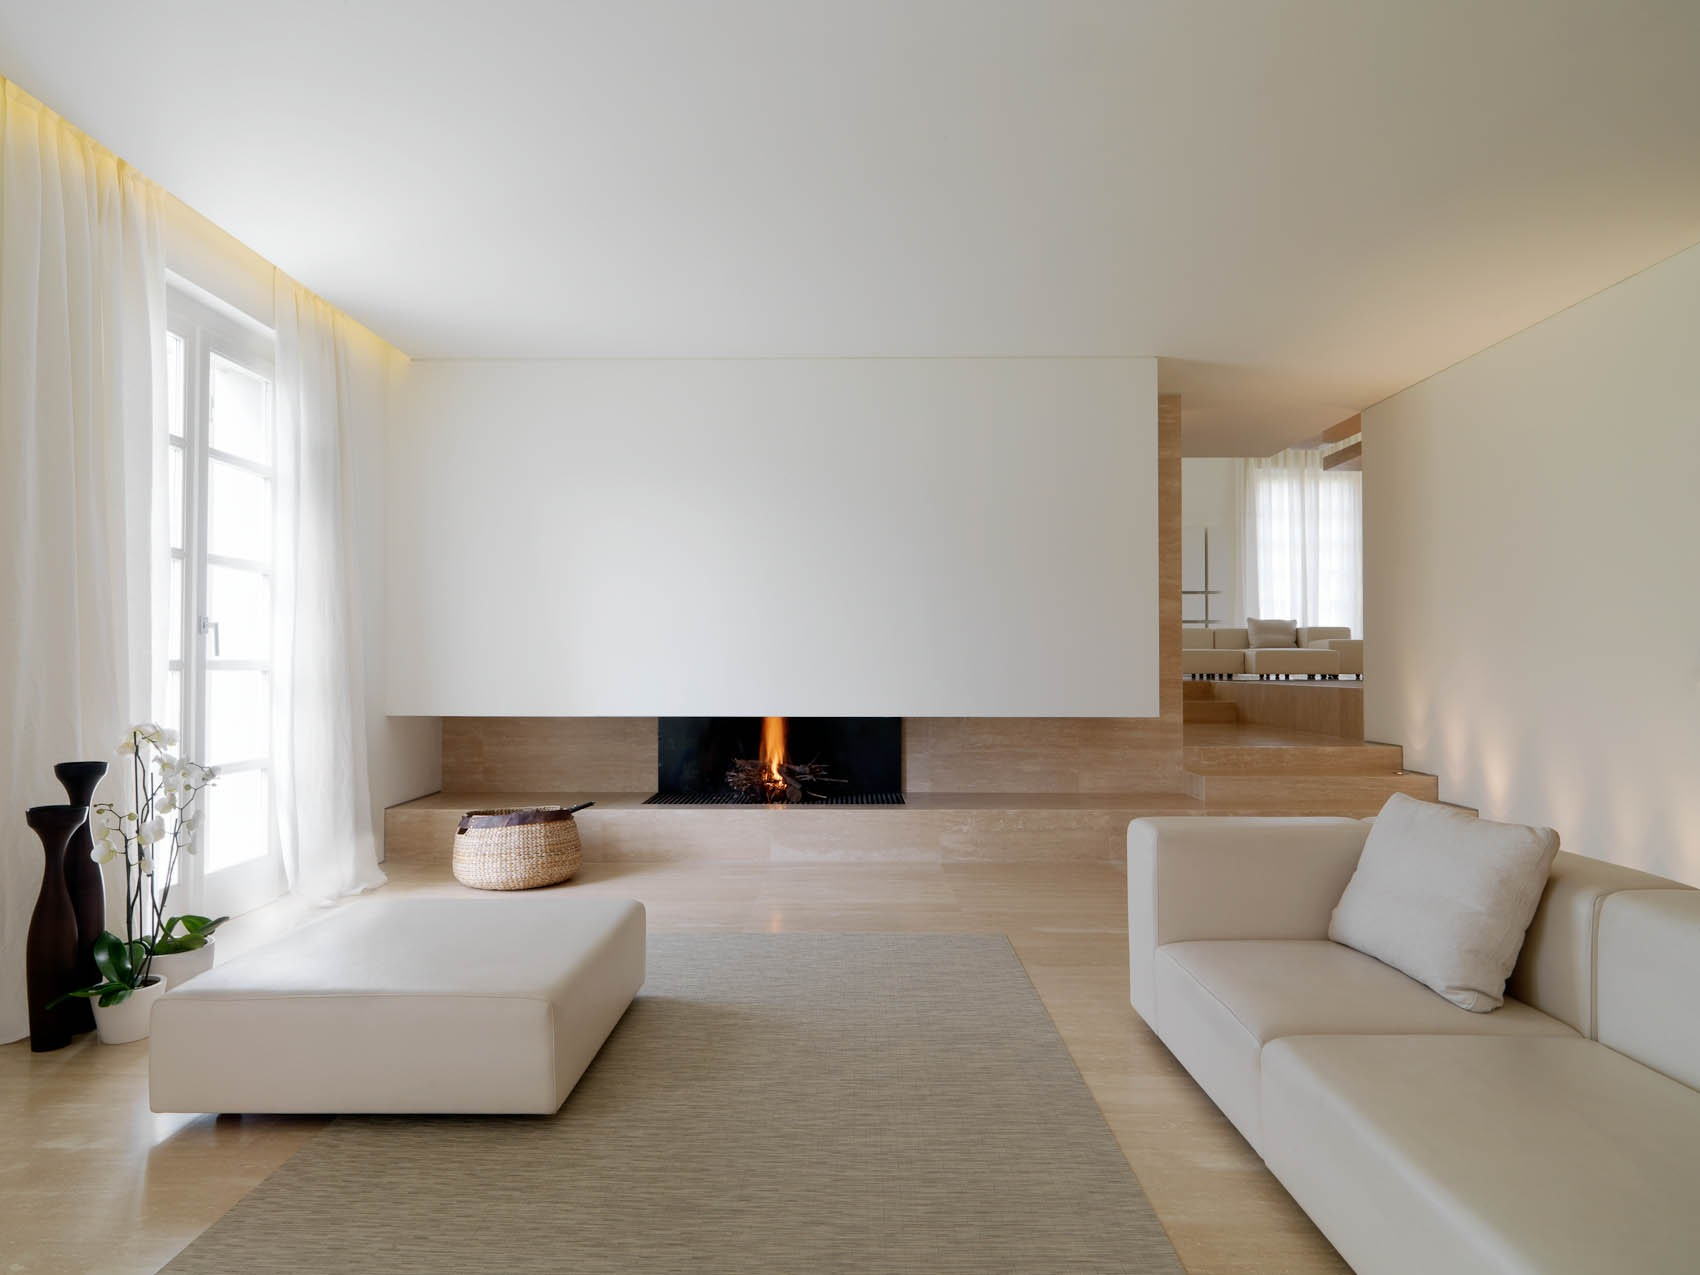 Indian Minimalism The New Decor Norm: Soldati House Interior By Victor Vasilev